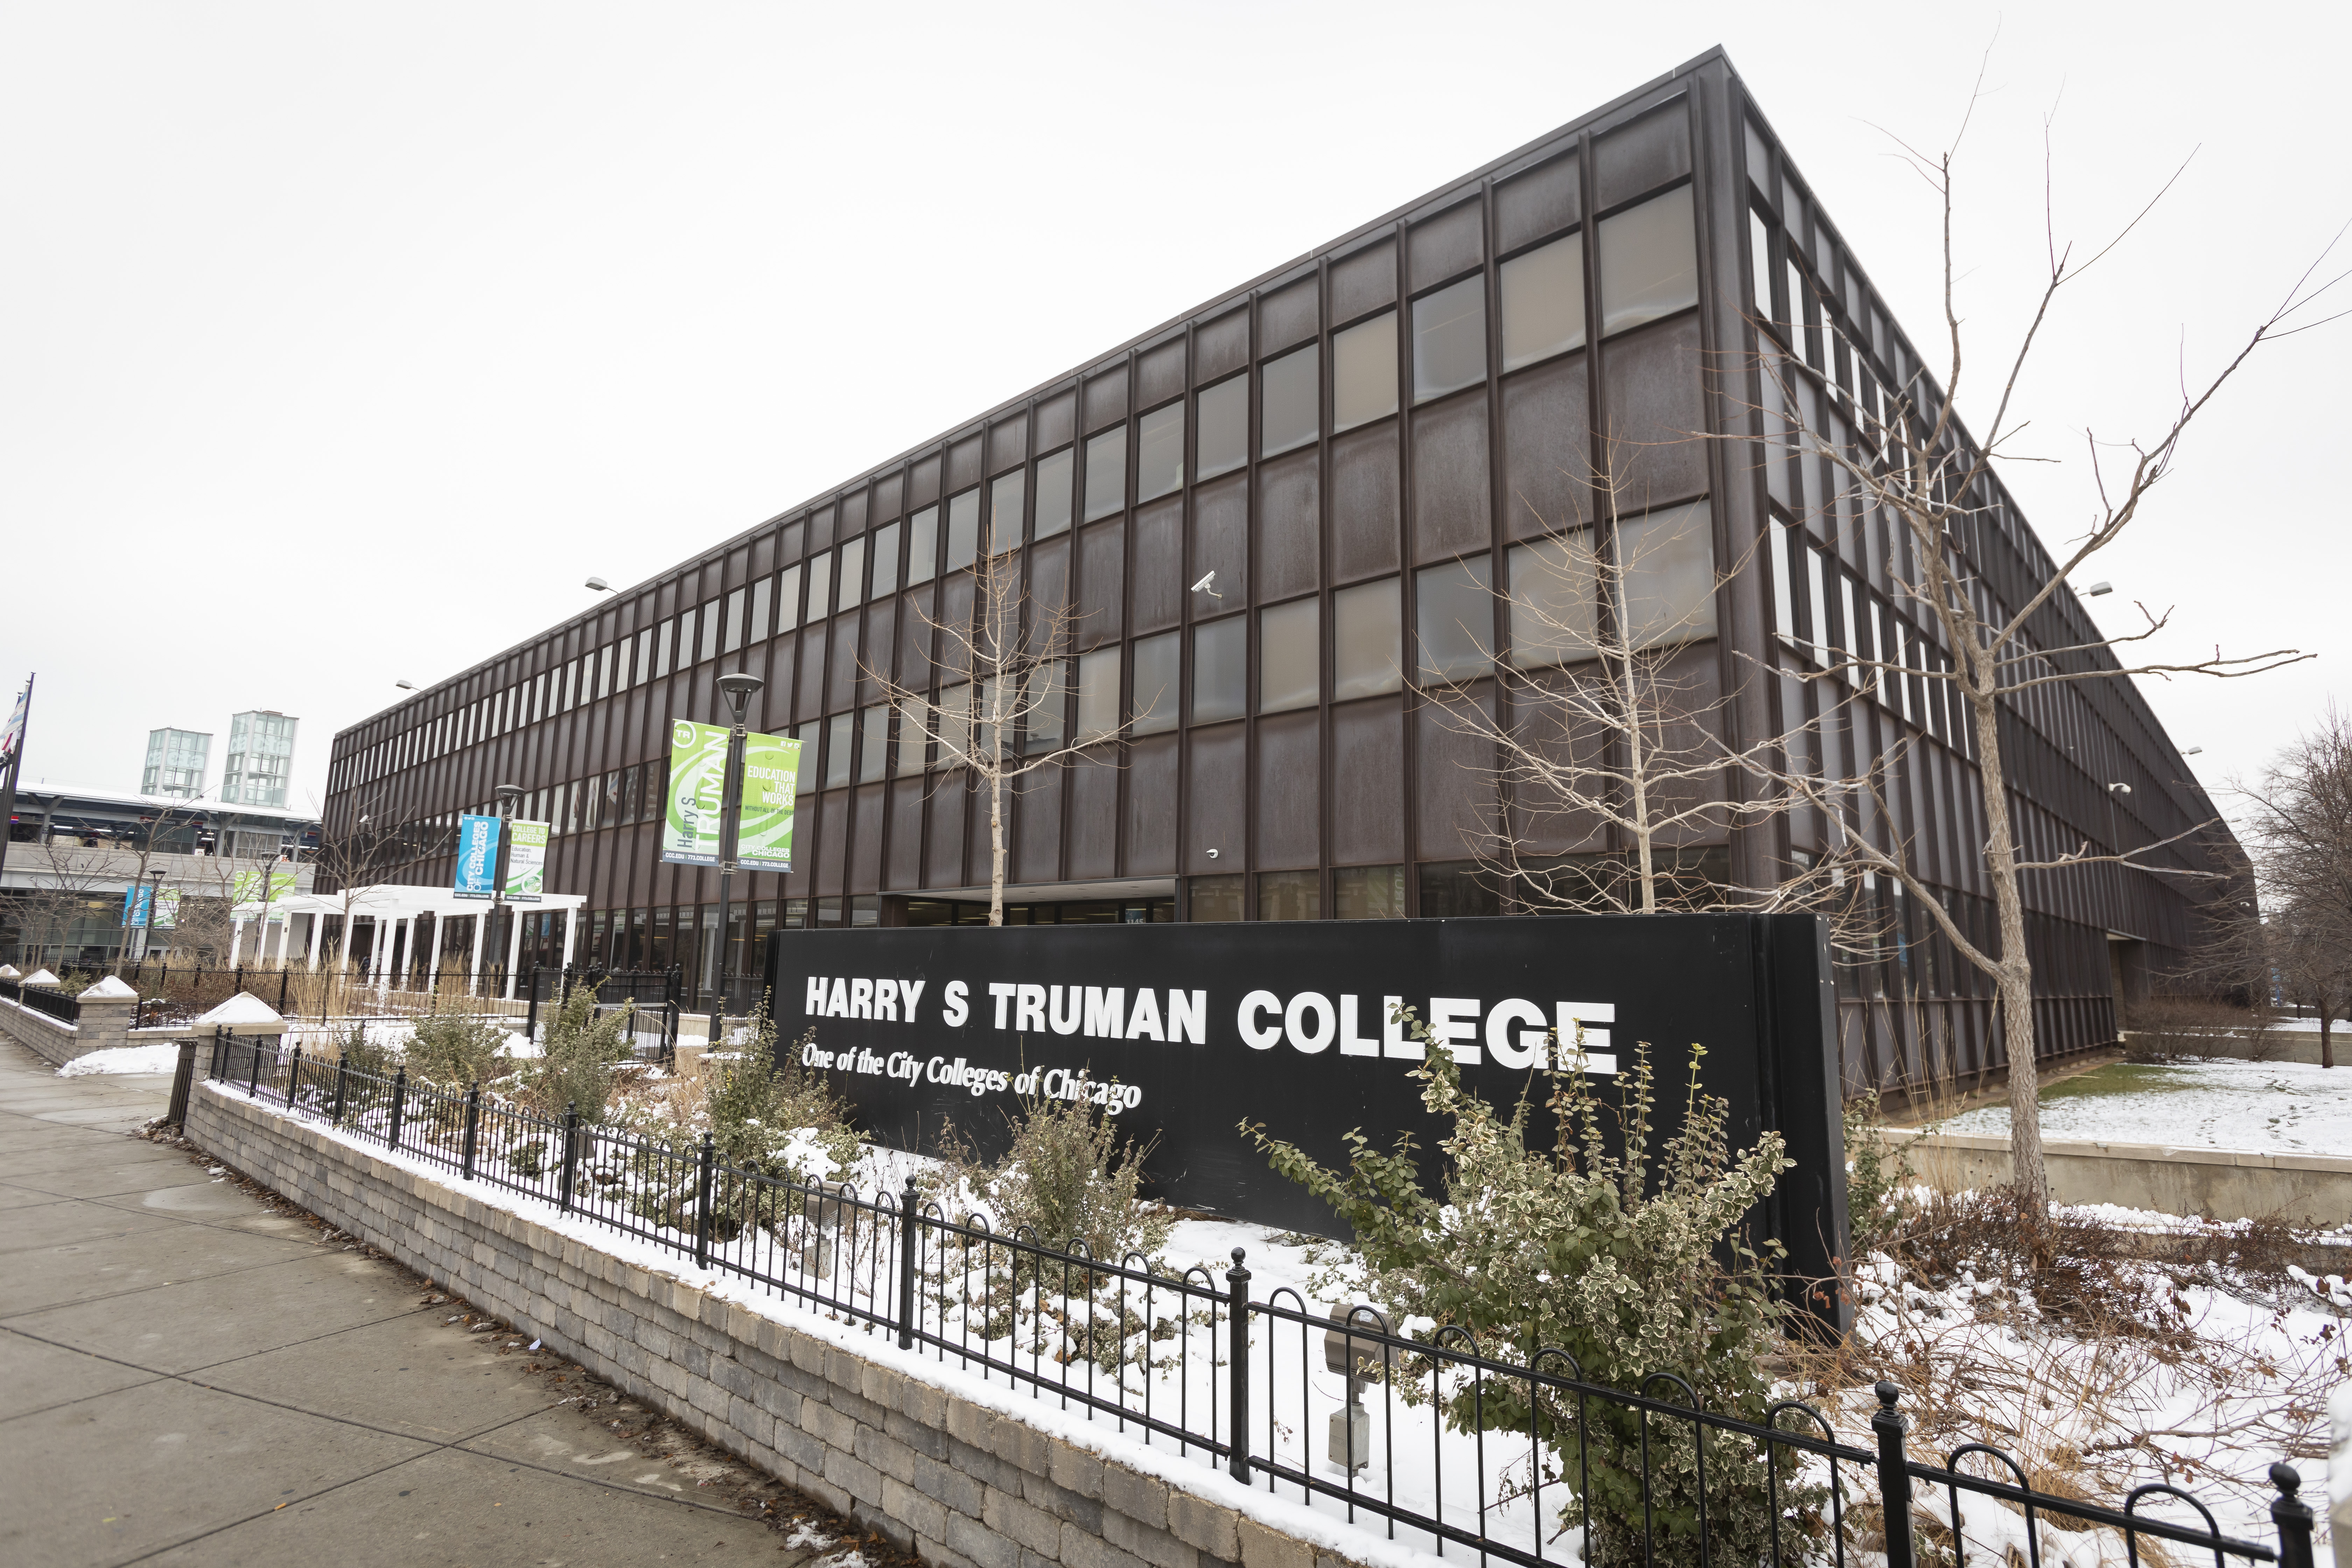 Harry S Truman College at 1145 W. Wilson Ave. in Chicago. (Manuel Martinez/WBEZ)